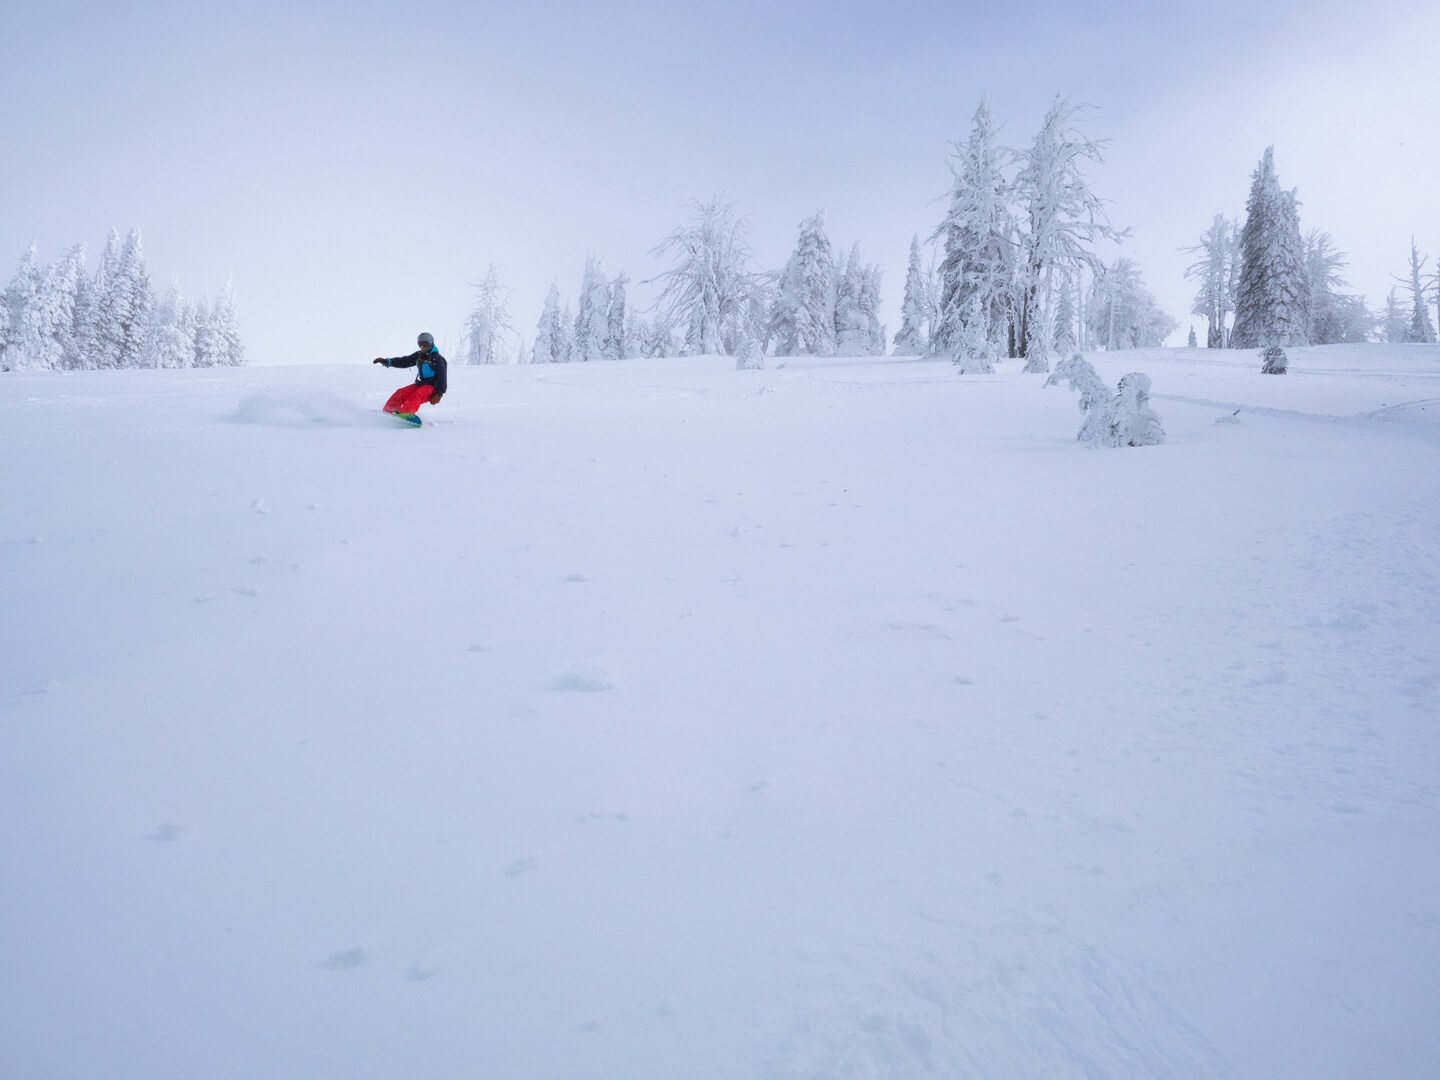 Snowboarder carving powder at Brundage Mountain near McCall Idaho with ghost trees